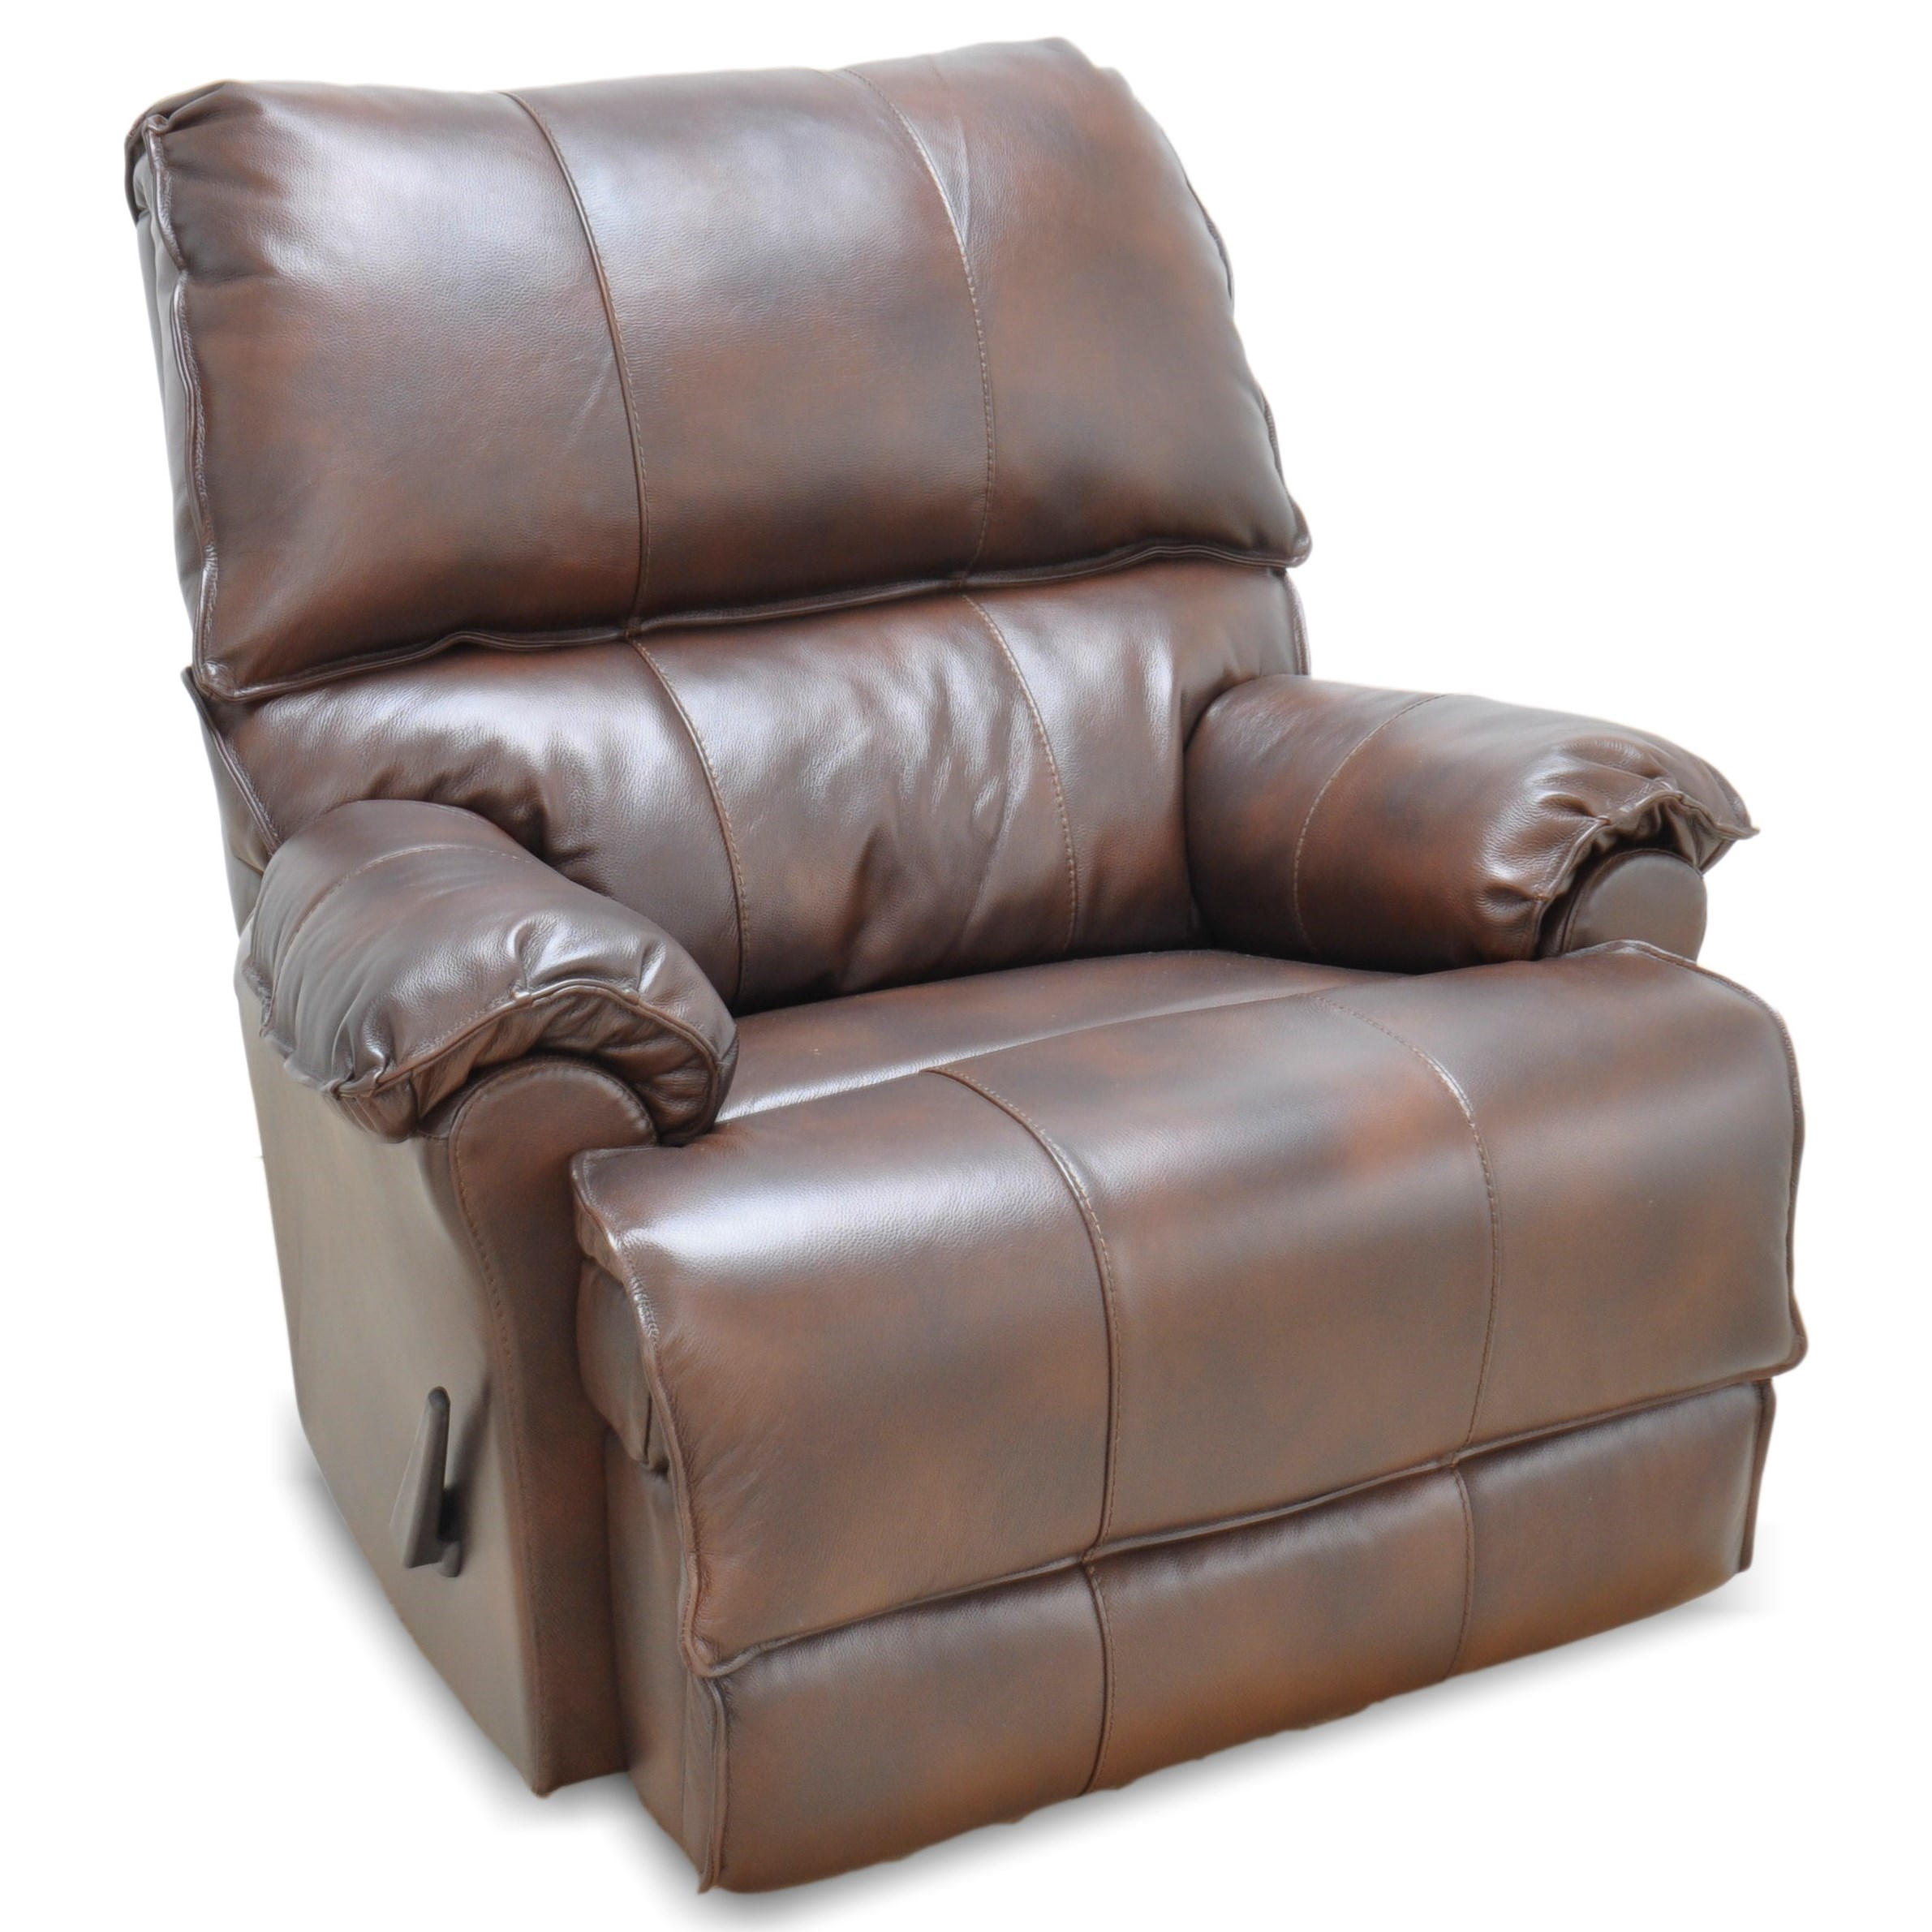 Swivel Rocker Recliner Chair Franklin Recliners Lucas Swivel Rocker Recliner By Franklin At Howell Furniture